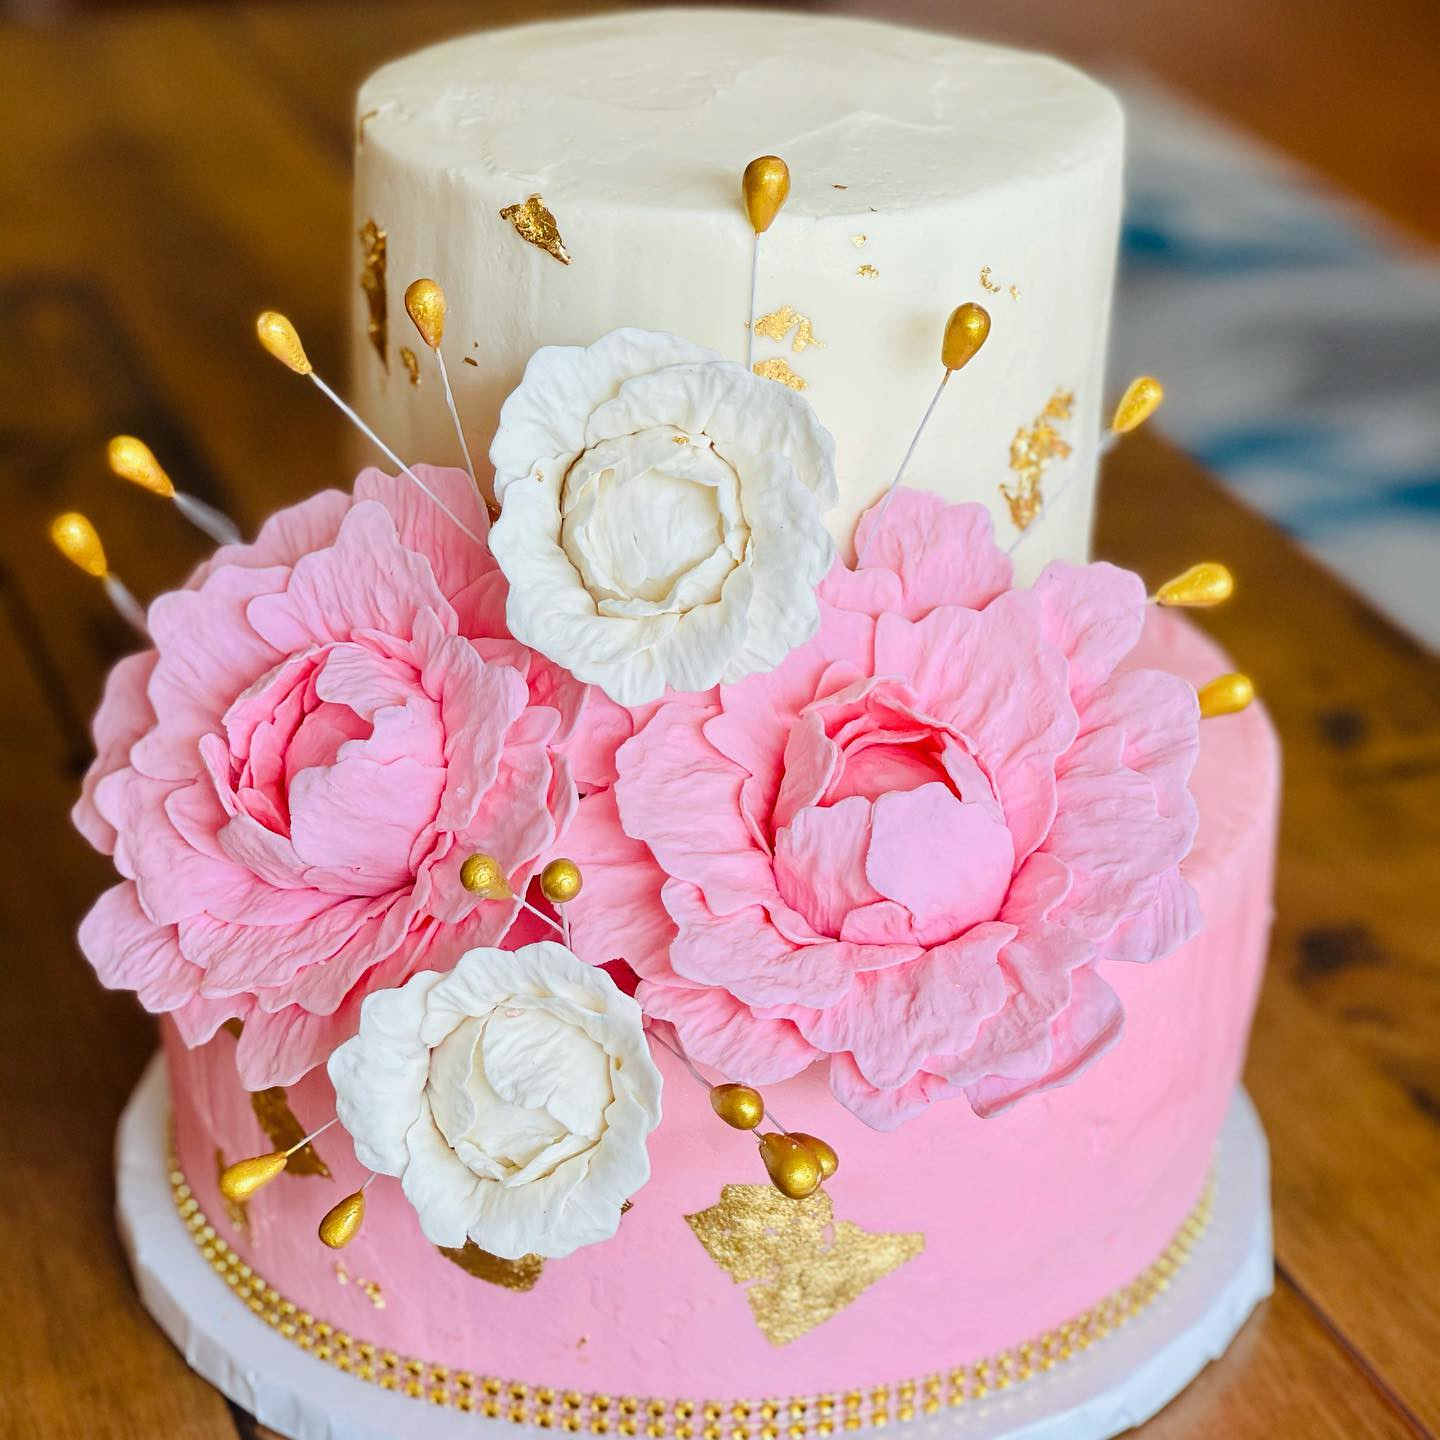 Cake by In the Mix Bakery